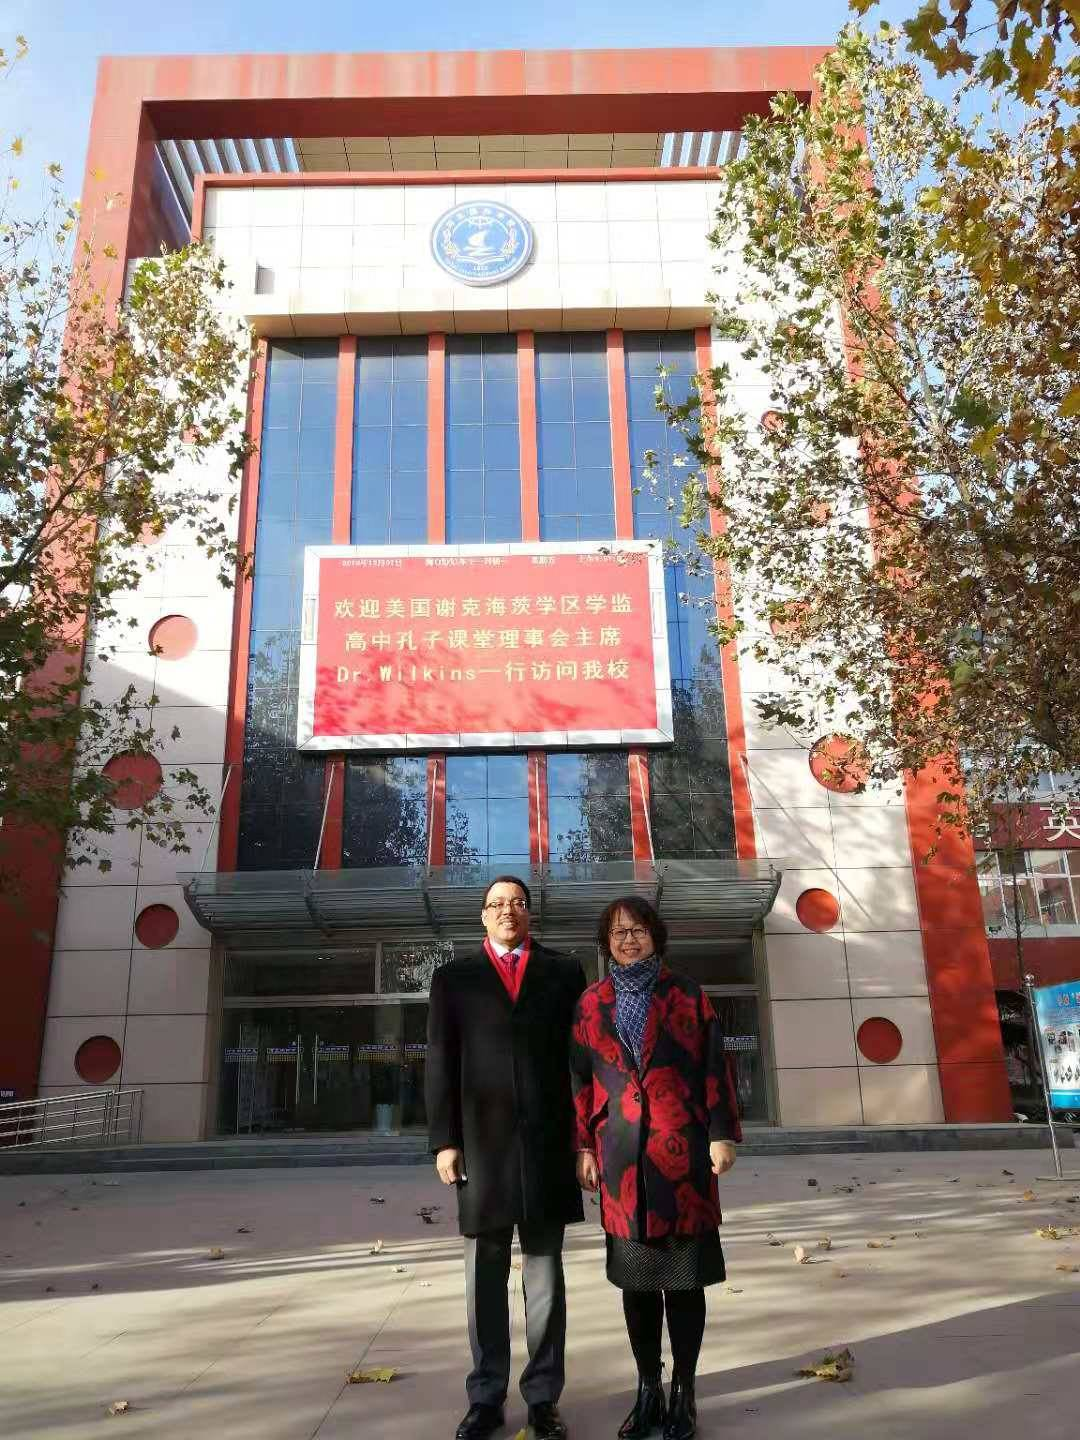 Dr. Wilkins poses outside a Chinese school.